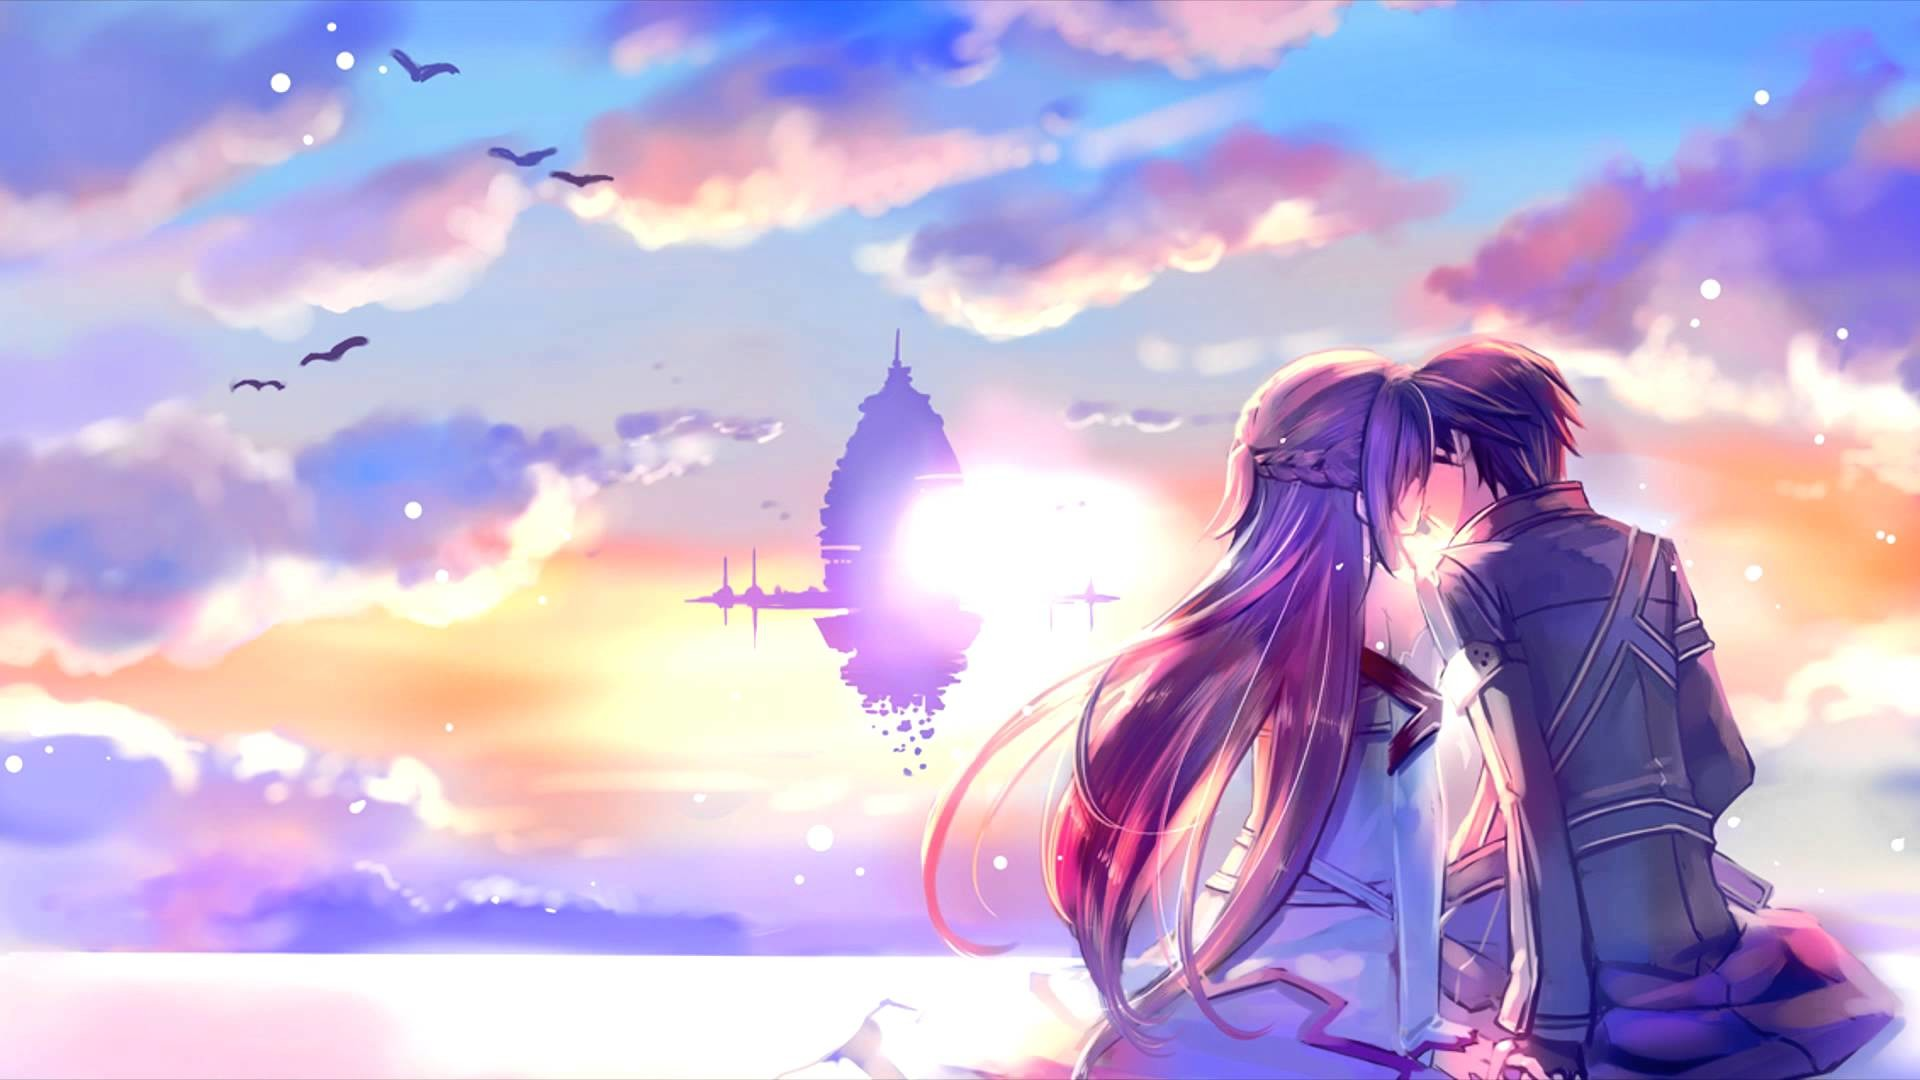 Romantic Anime Wallpapers  64  images  1920x1080 Romantic Asuna And Kirito Sword Art Online Wallpaper  2815